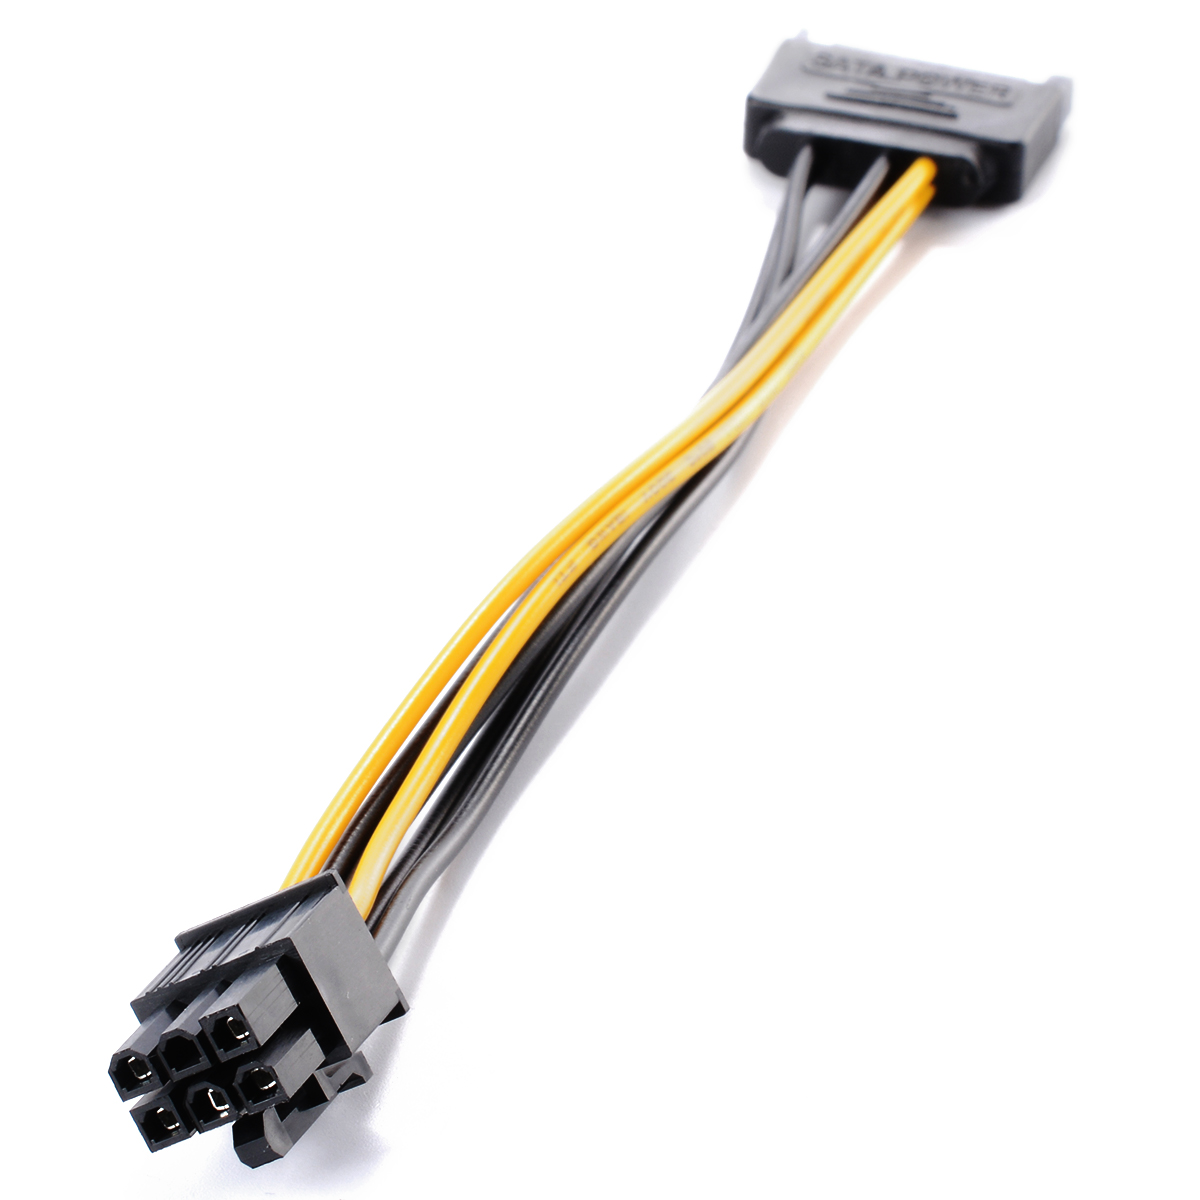 Power Cable Connectors : Pin sata to pci e express video card power